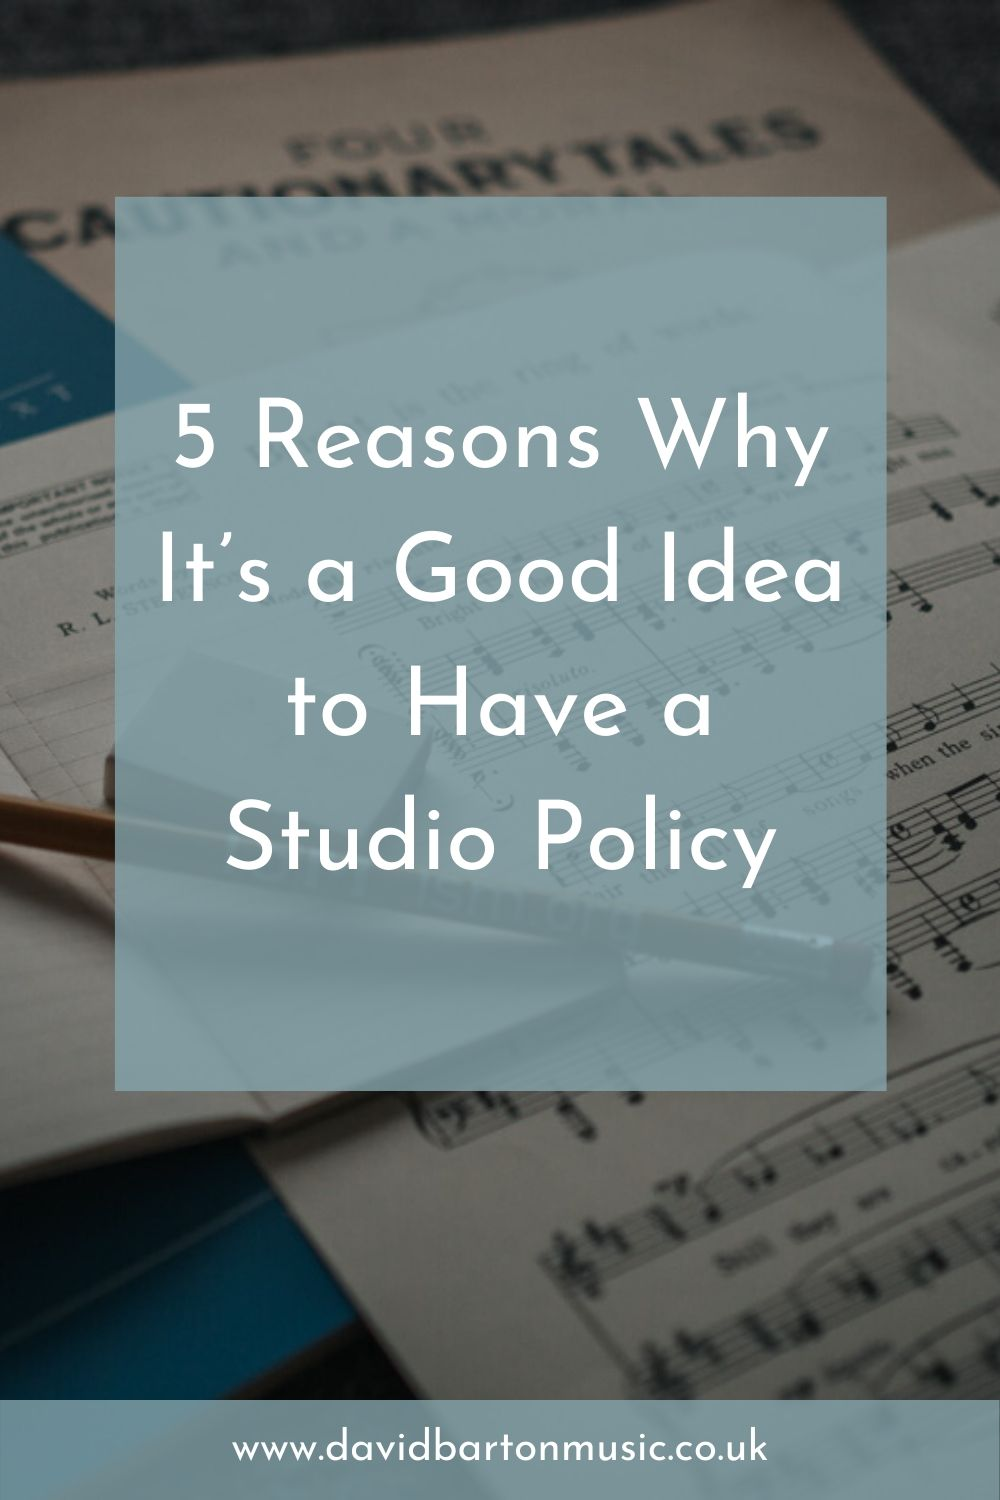 5 Reasons Why It's a Good Idea to Have a Studio Policy - Pinterest graphic